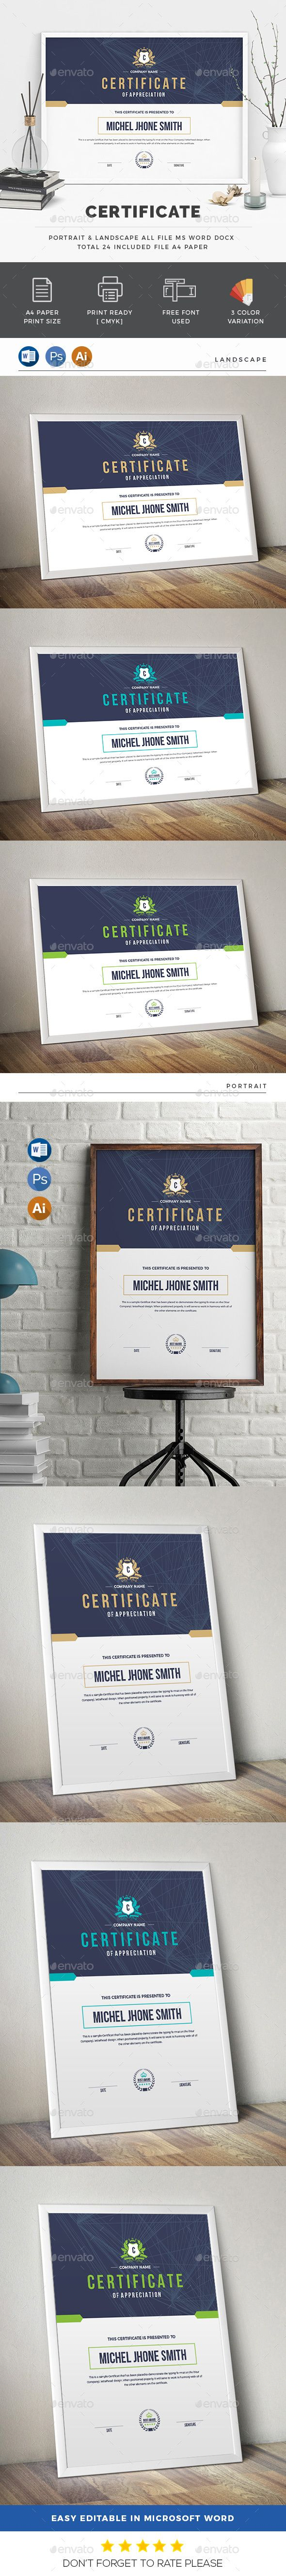 #Certificate - Certificates Stationery Download here: https://graphicriver.net/item/certificate/20091282?ref=alena994